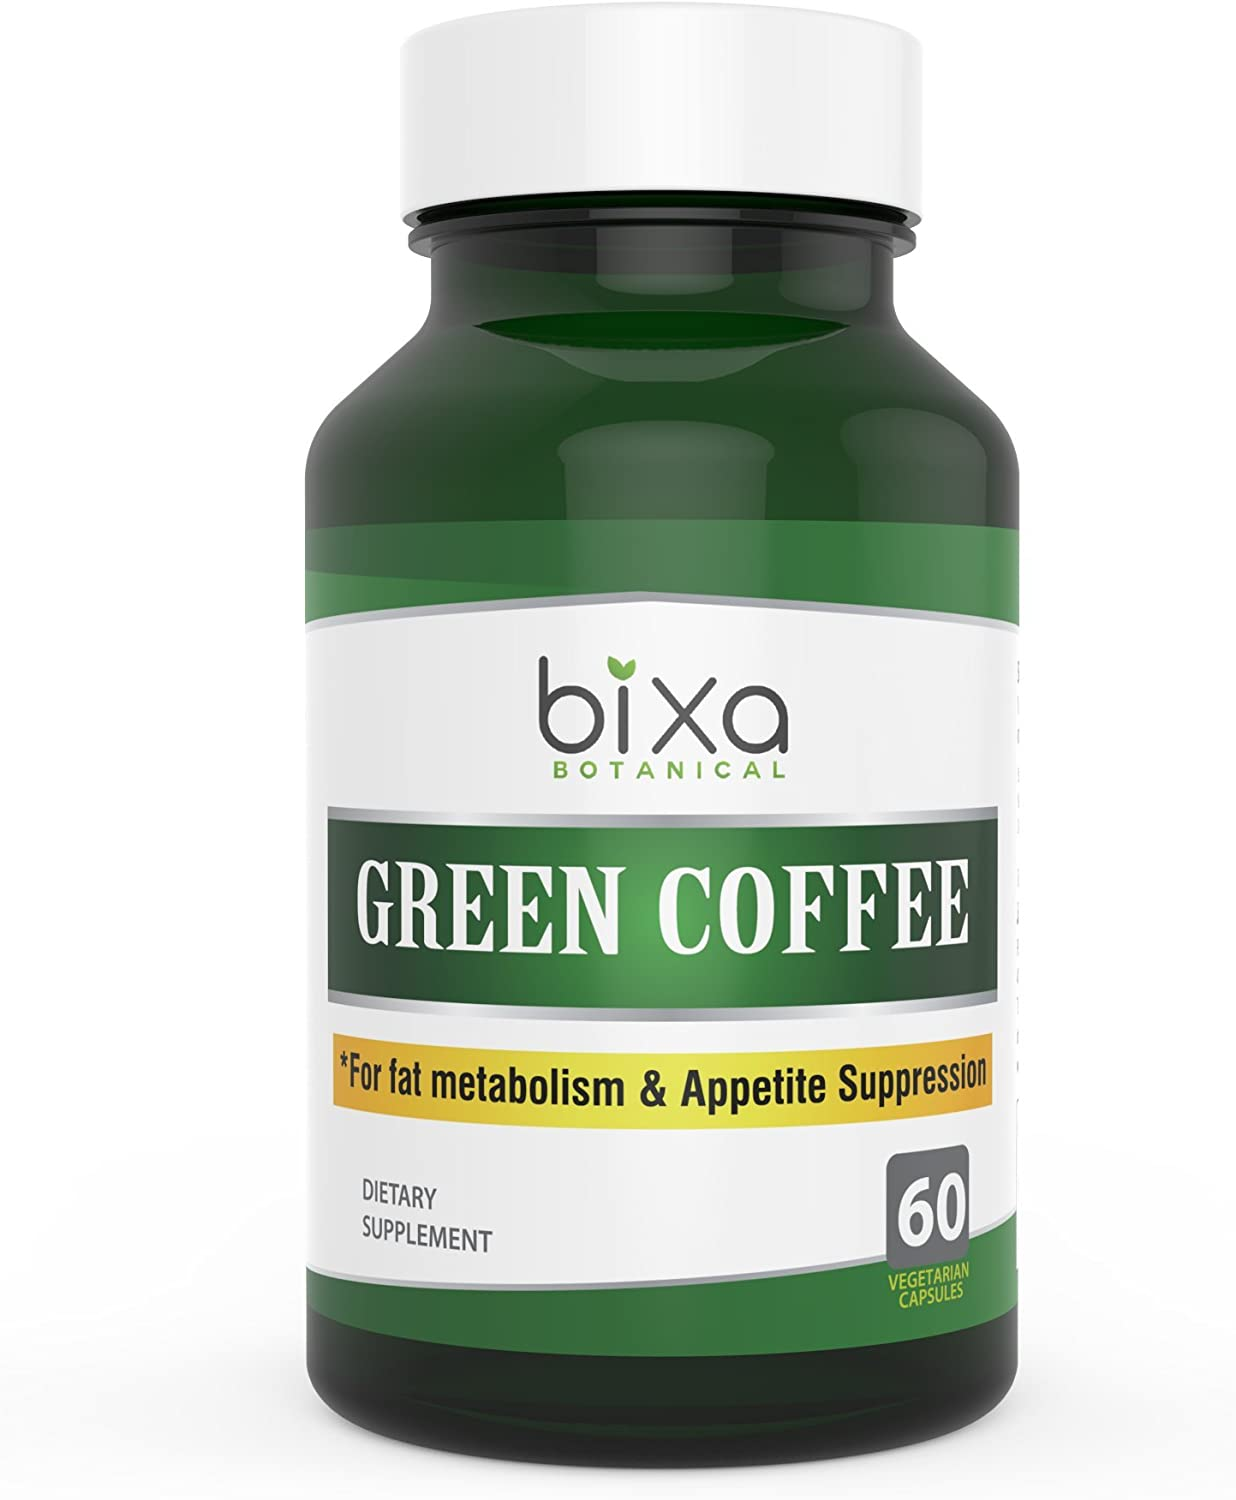 Green Coffee Bean Extract 50% Chlorogenic Acid 60 Veg Capsules (450mg) |Chlorogenic Acid | Supports Weight Loss & Metabolic Boost | for Immunity, Stamina, Energy & Sugar Control | Bixa Botanical